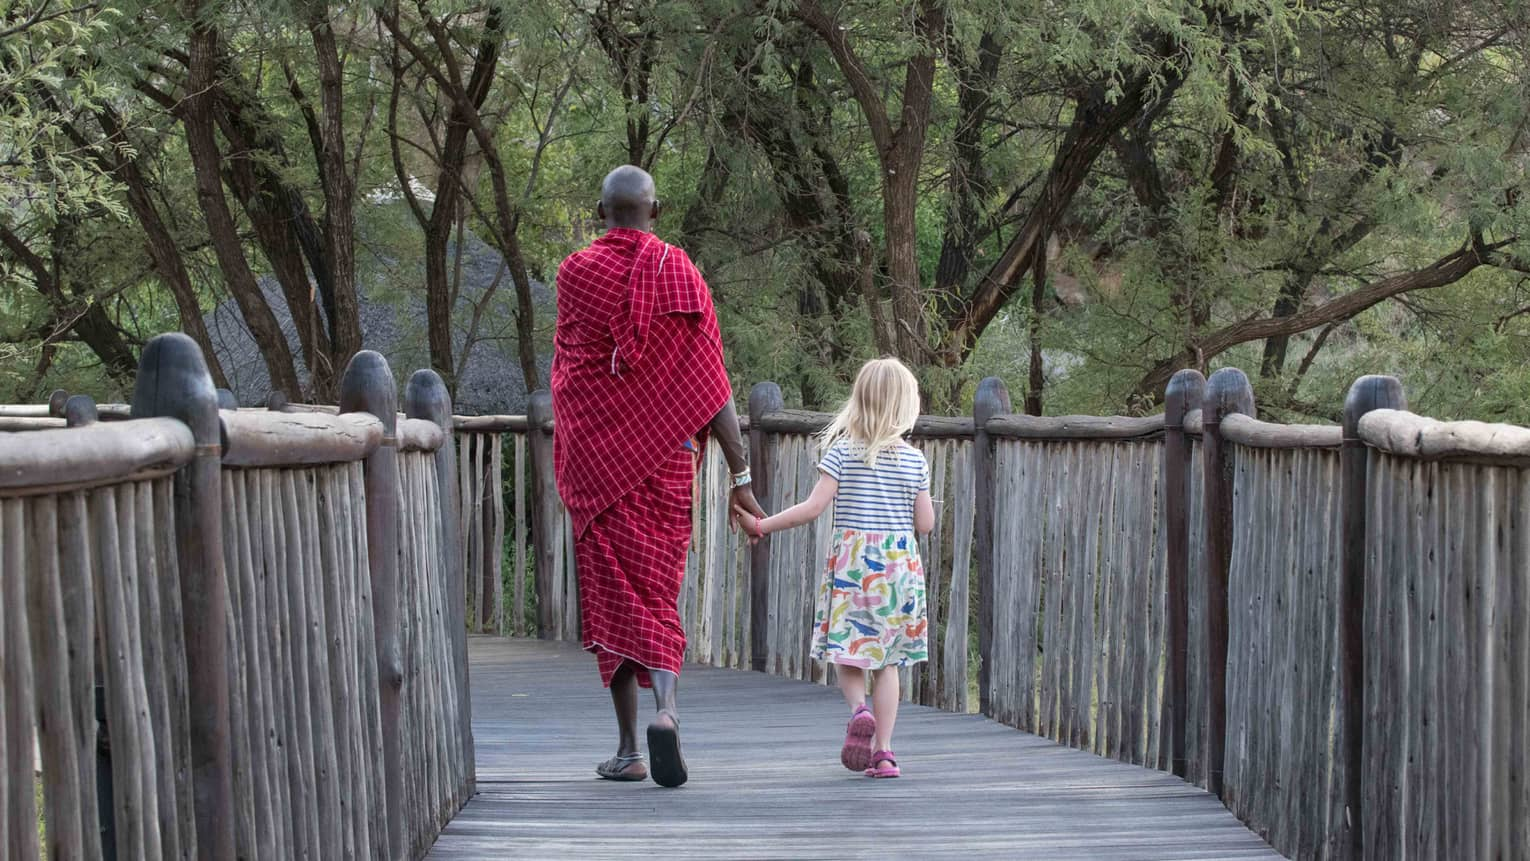 Maasai warrior holds hands, walks with young girl down wood bridge